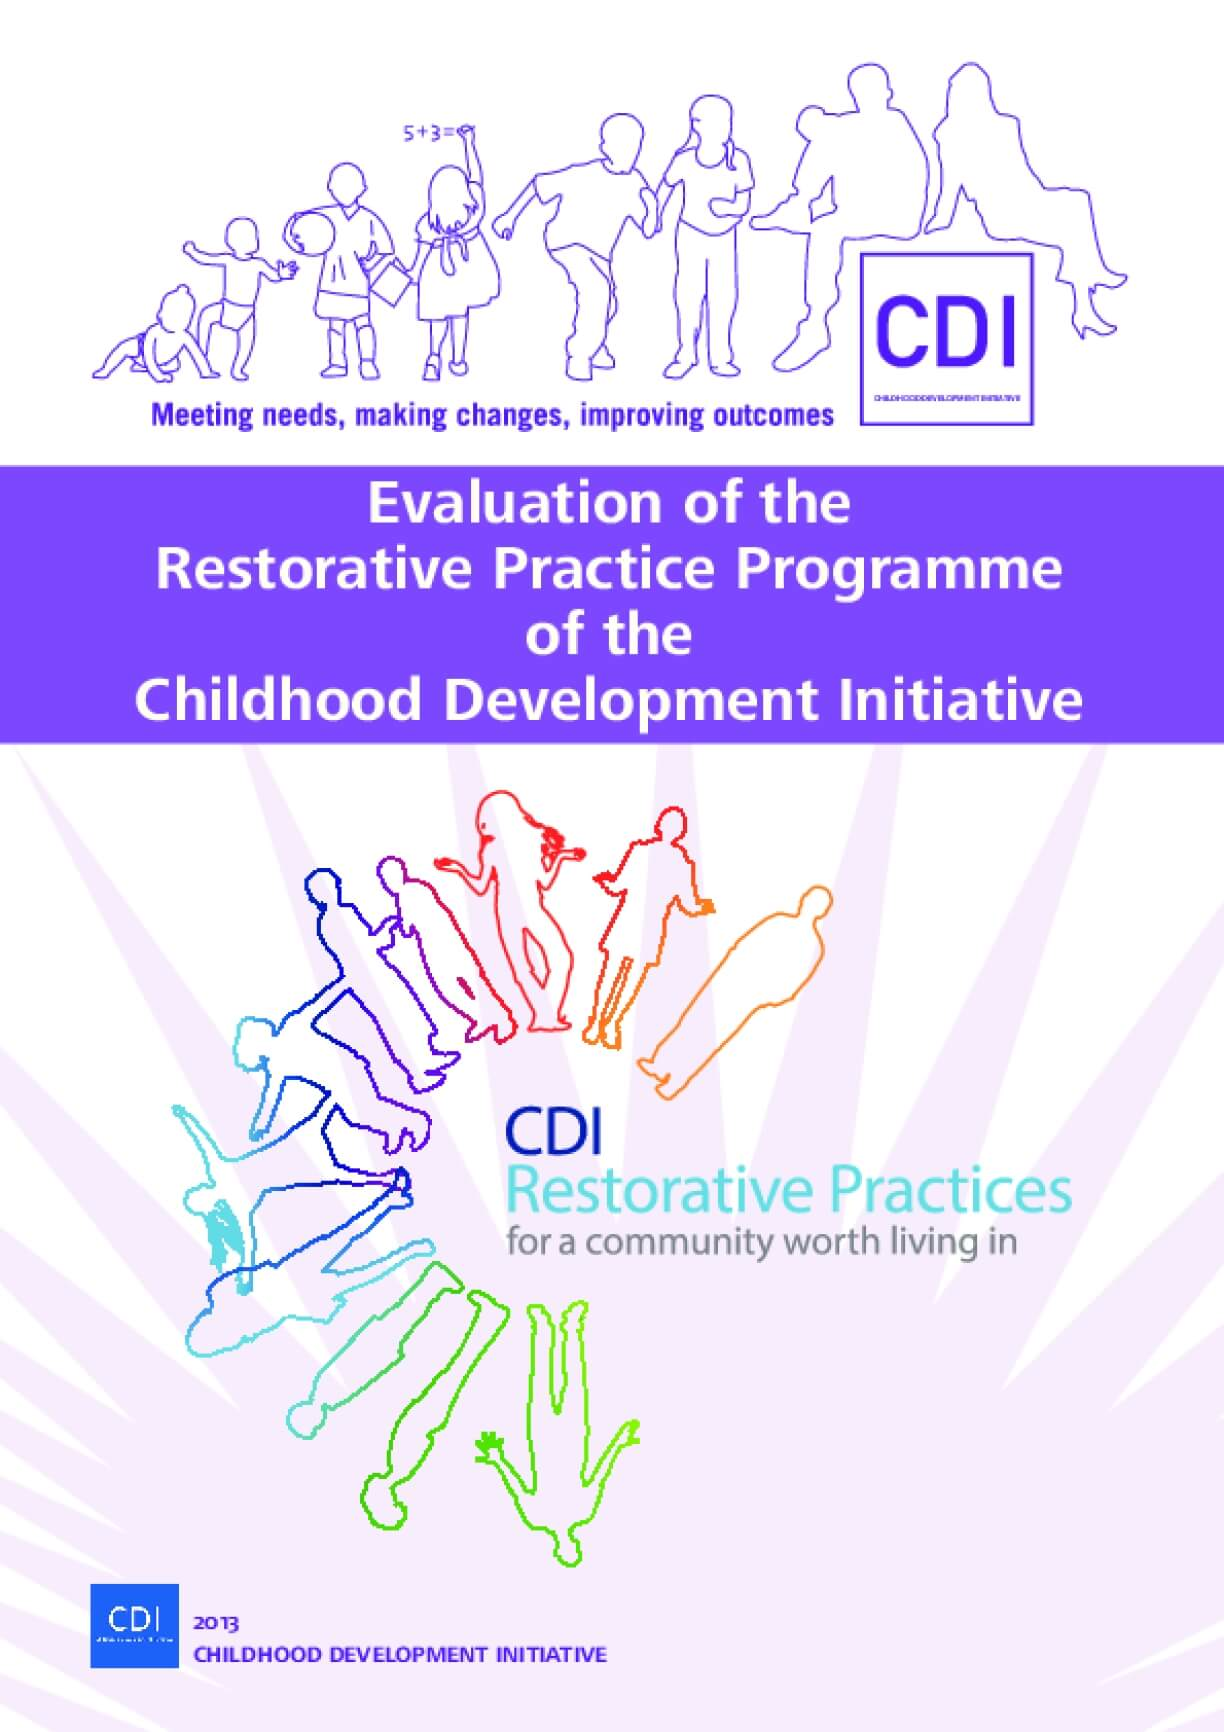 Evaluation of the Restorative Practices Programme of the Childhood Development Initiative